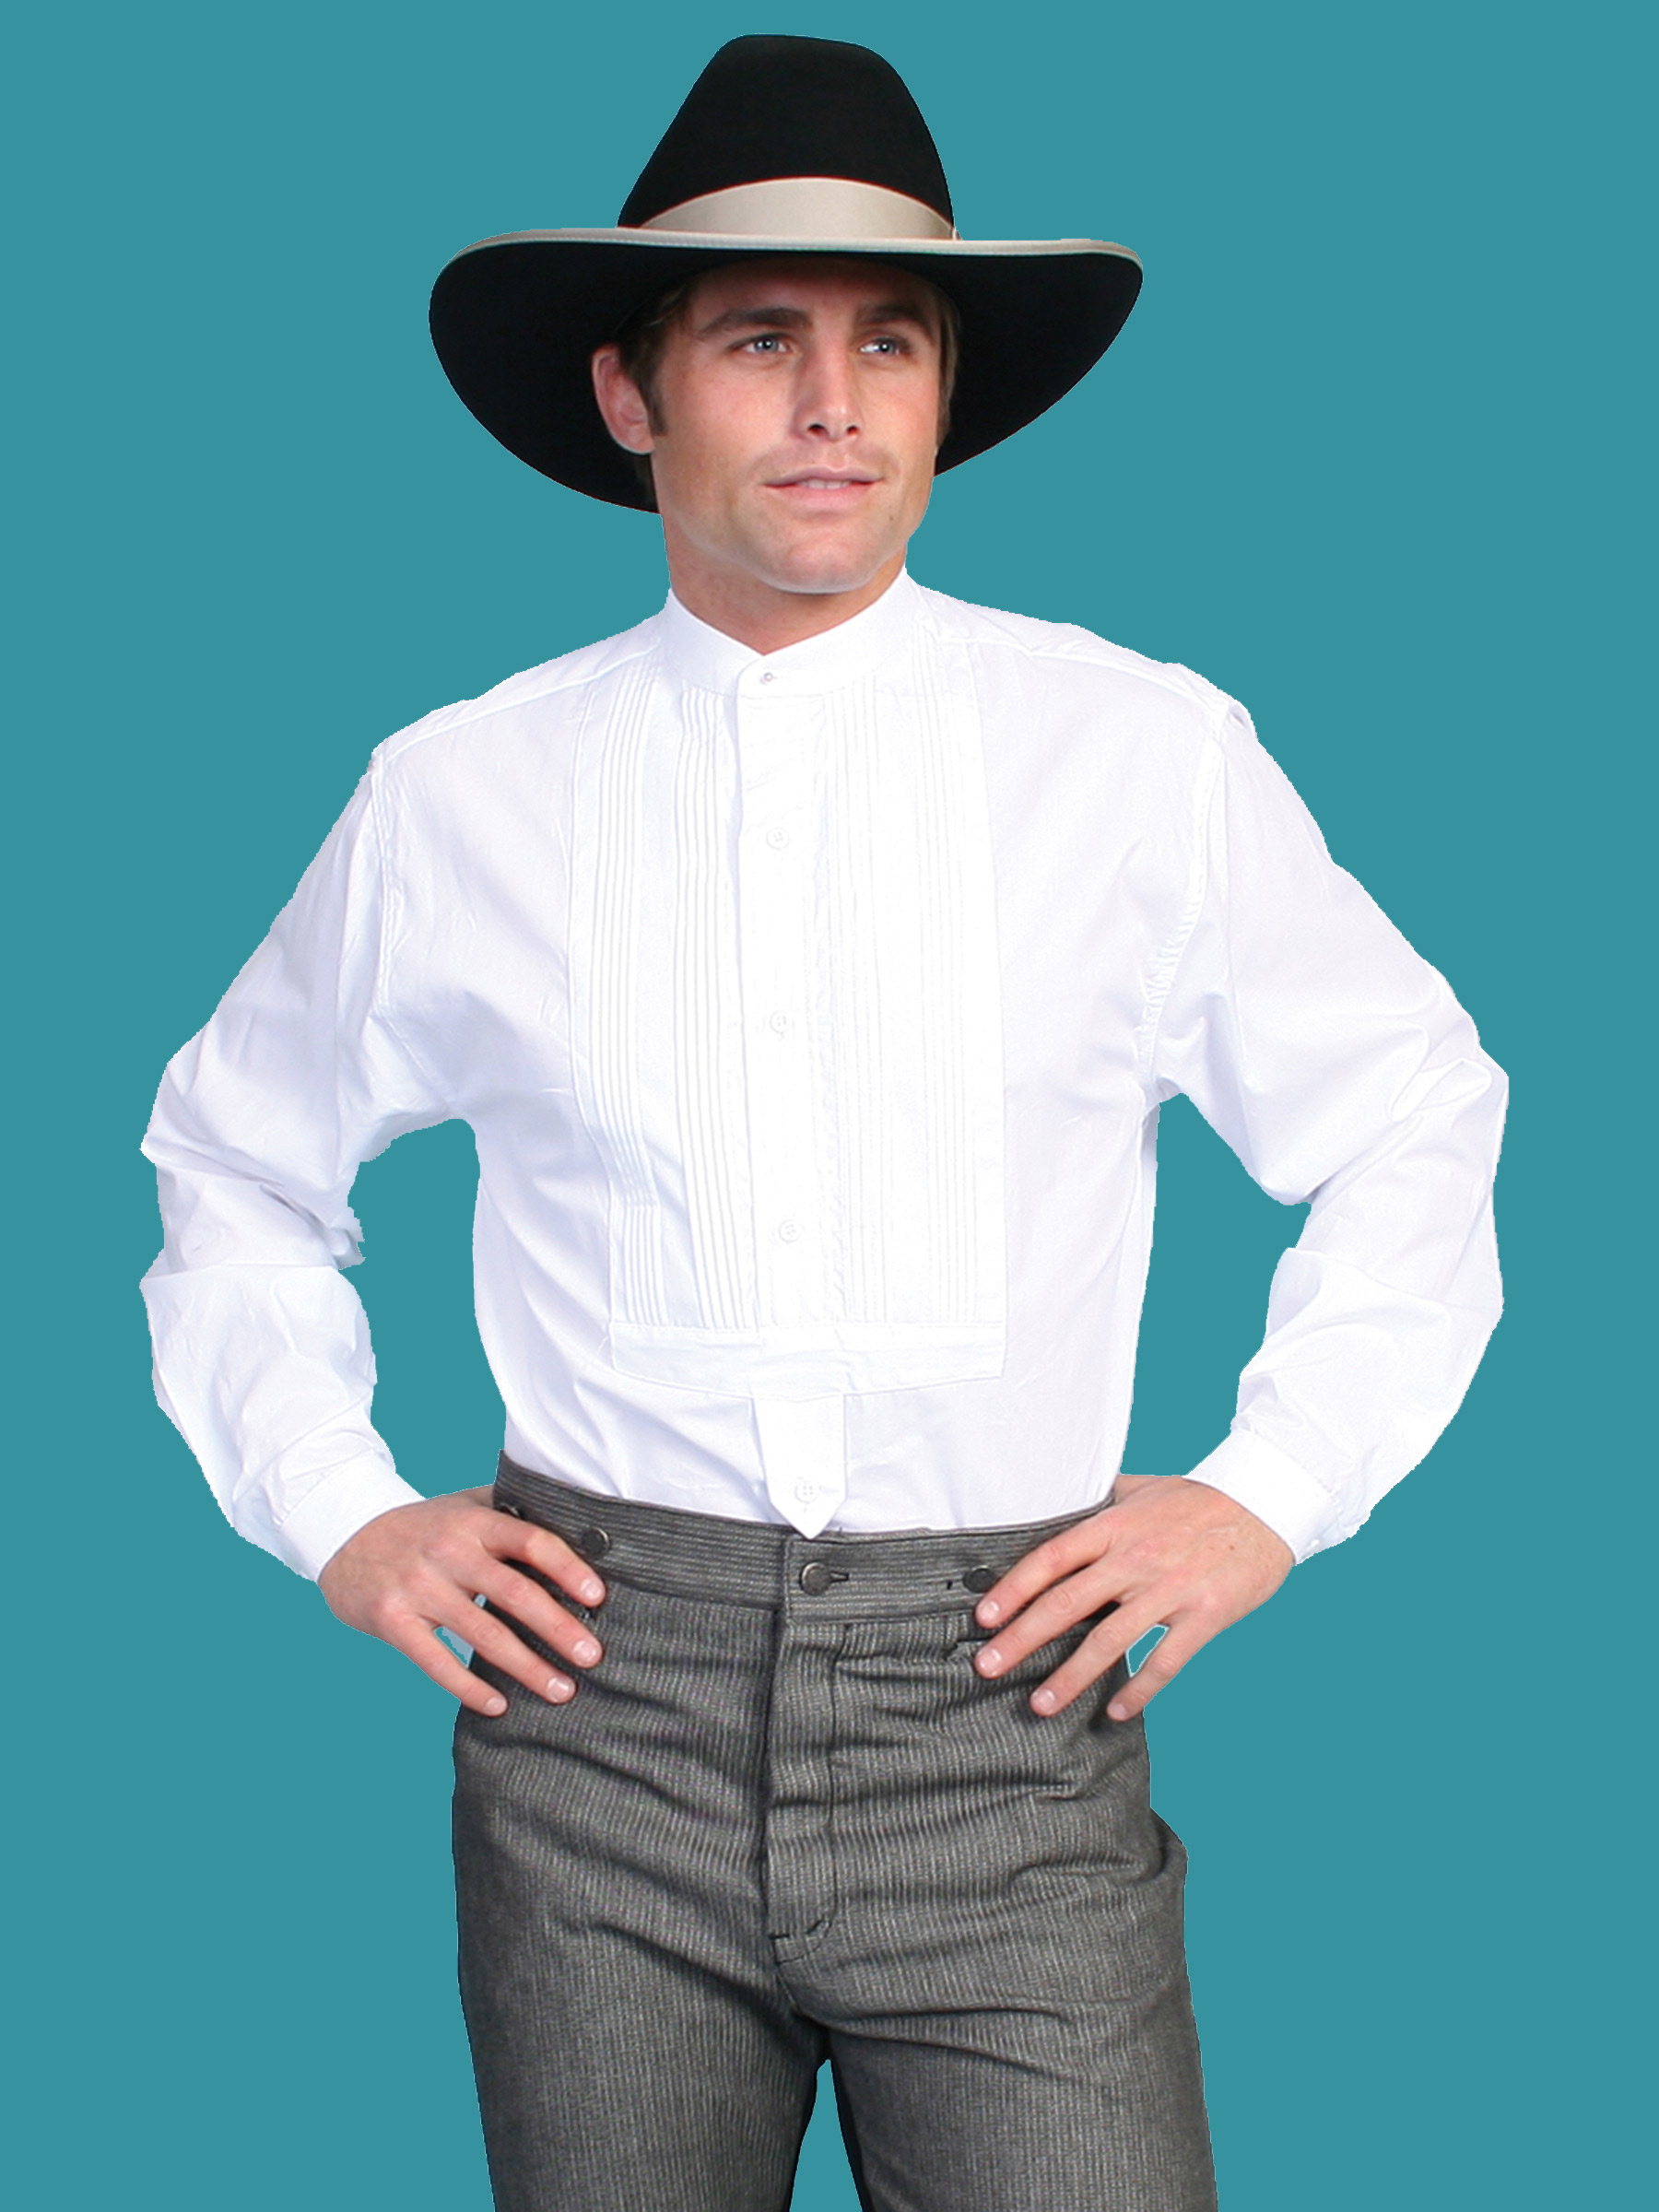 6411aeb6 BIG AND TALL › Rangewear Men's Victorian TUXEDO FRONT SHIRT-WHITE. SCULLY  RW032 WHITE. CLICK or HOVER to ENLARGE